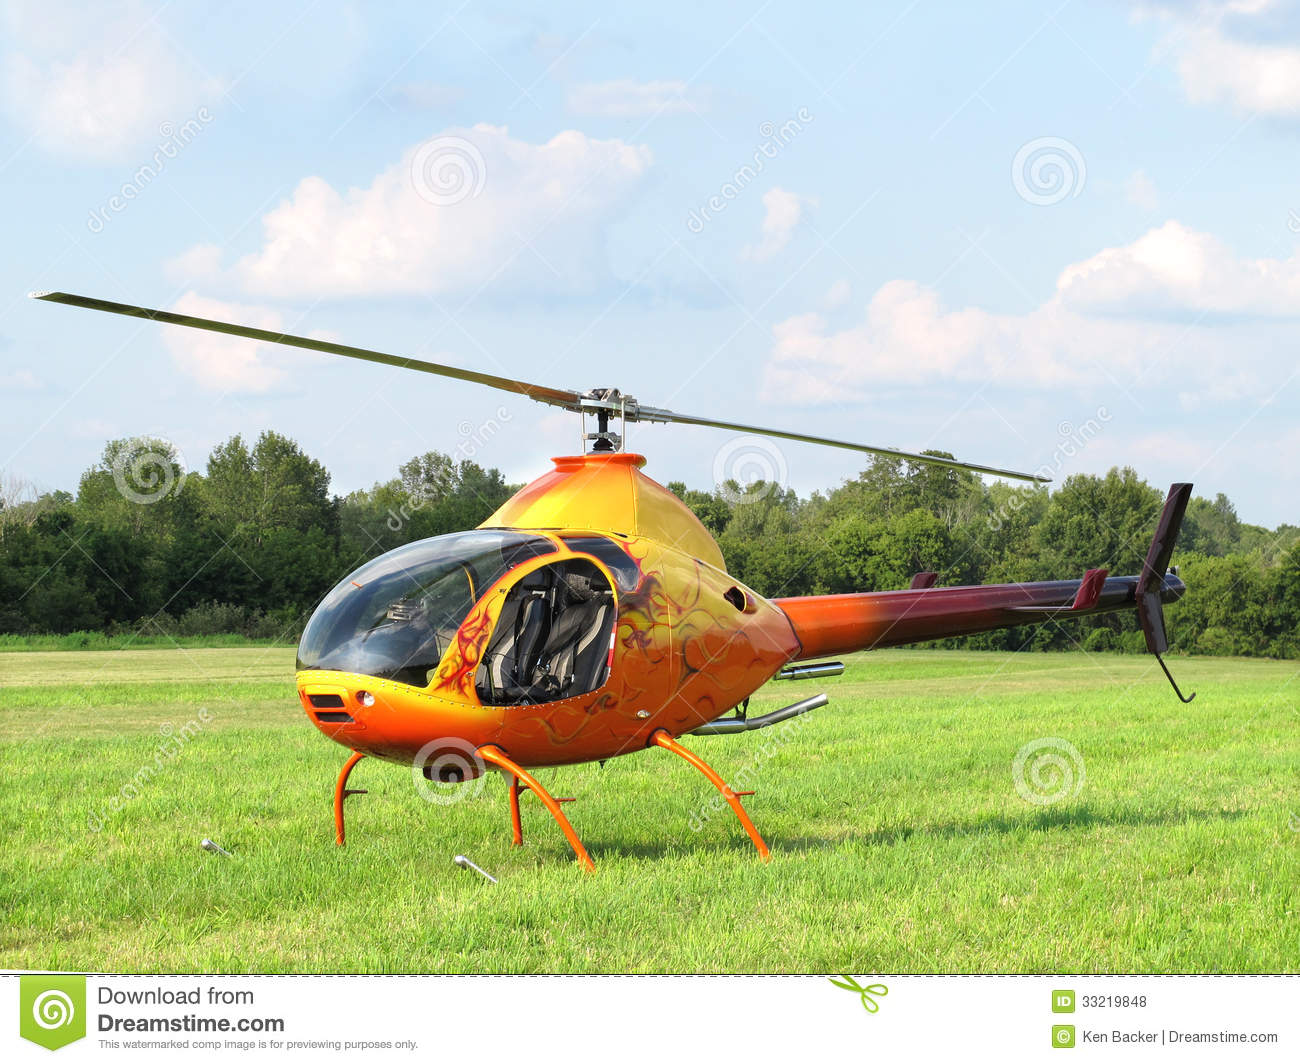 smallest personal helicopter with Royalty Free Stock Photos Small Helicopter Grassy Field Sport Private Sitting Trees Blue Sky Background Image33219848 on Best Jets Ltd Breathes New Life Into Learjets besides Charter Service further 57920 moreover Homebuilt aircraft besides 2526026.